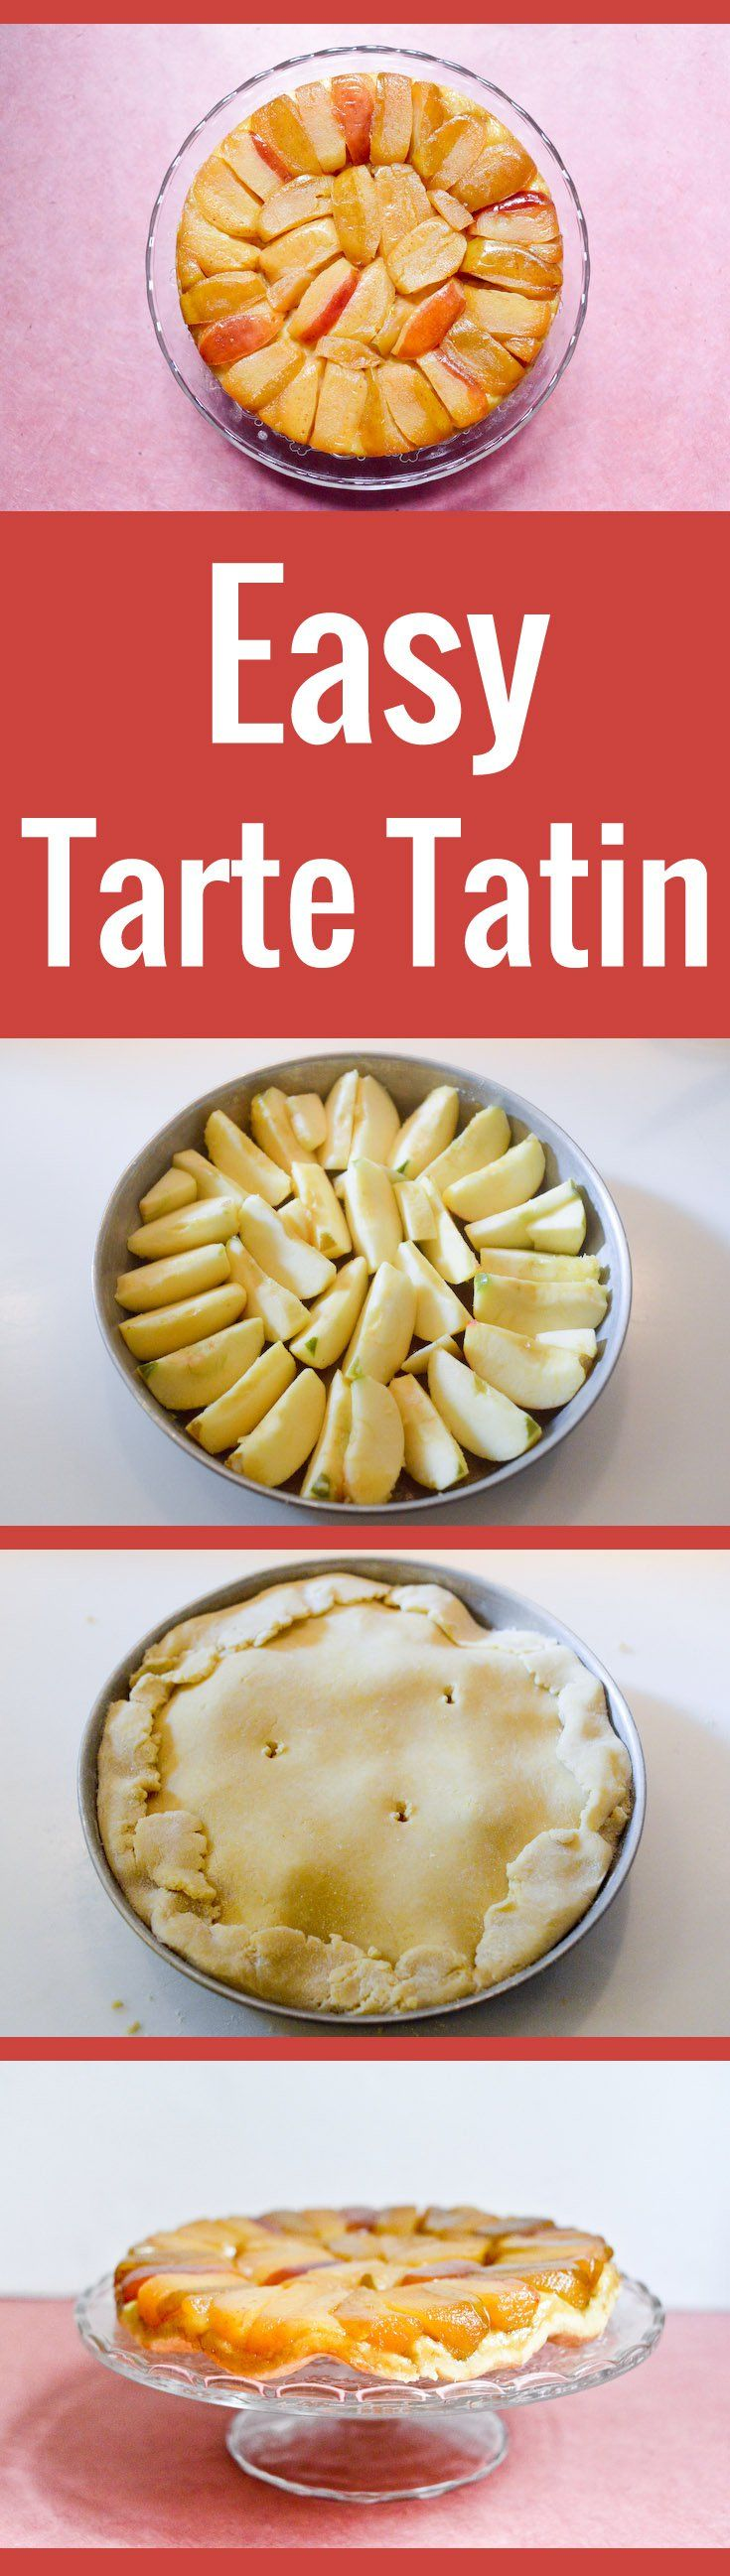 An easy and straightforward recipe for the classic French dessert, with soft apples and salted butter caramel.